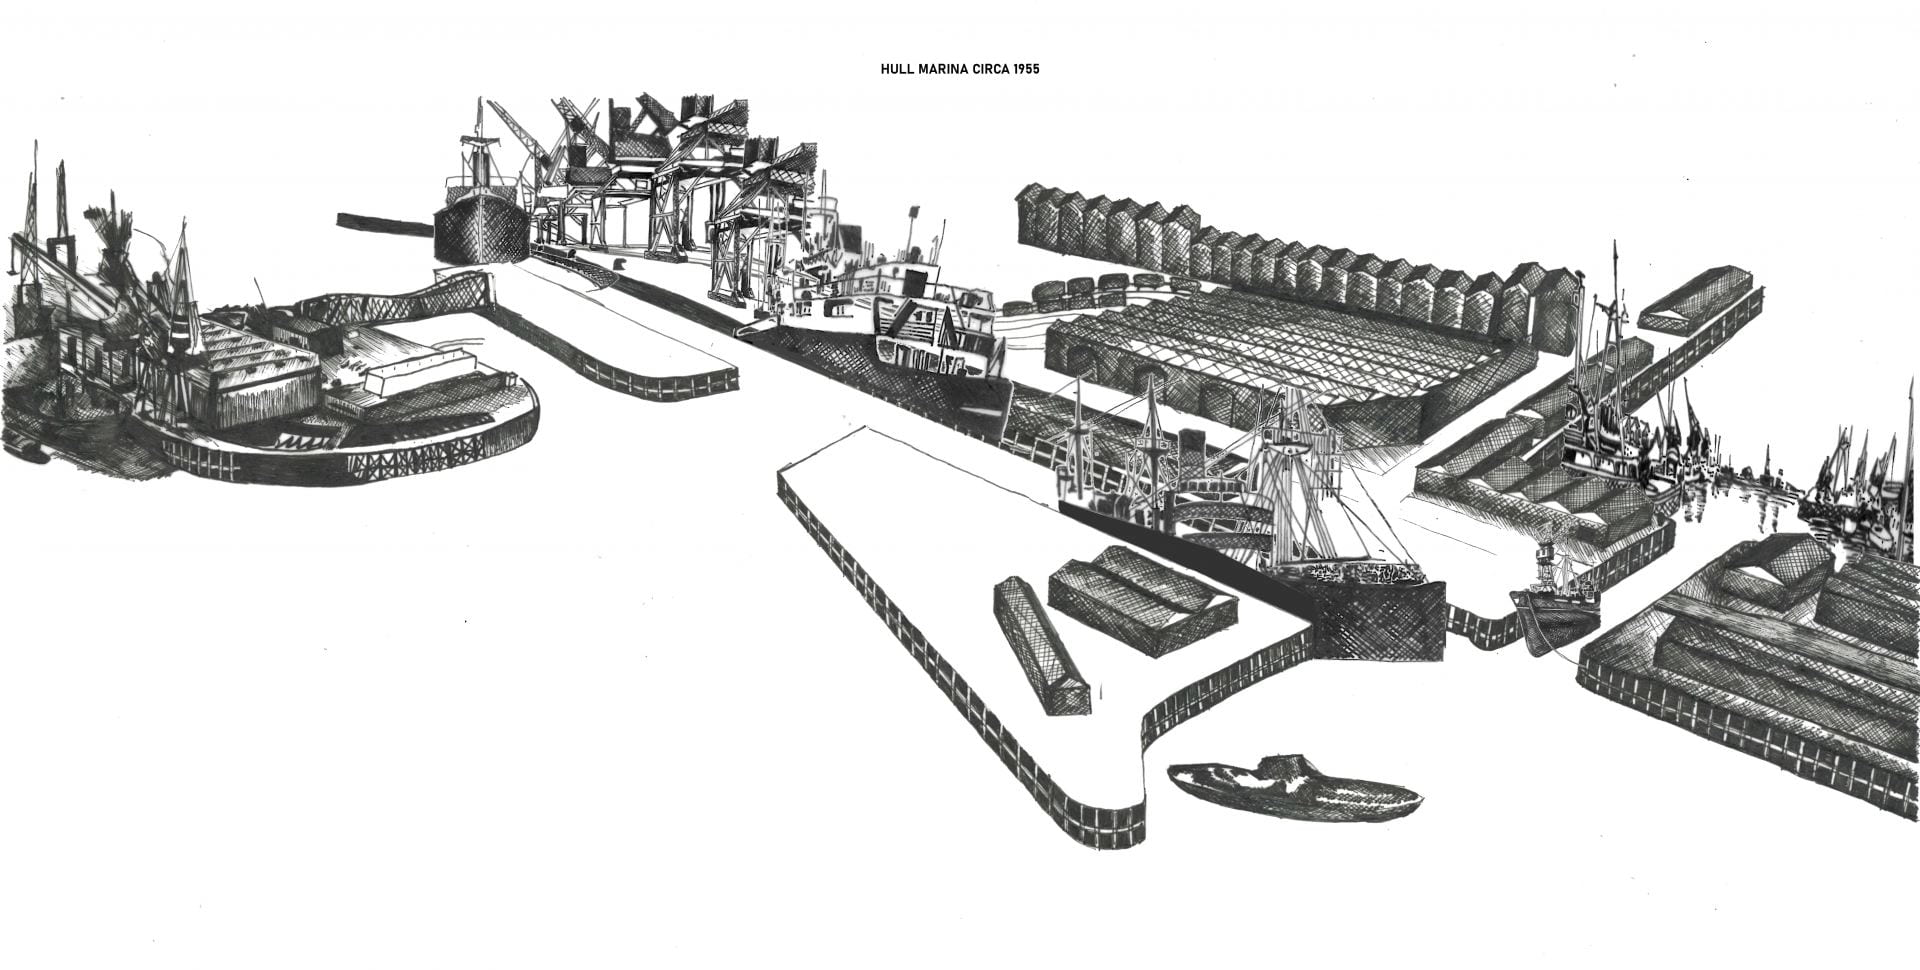 black and white drawing of the Hull Marina in the 1950's